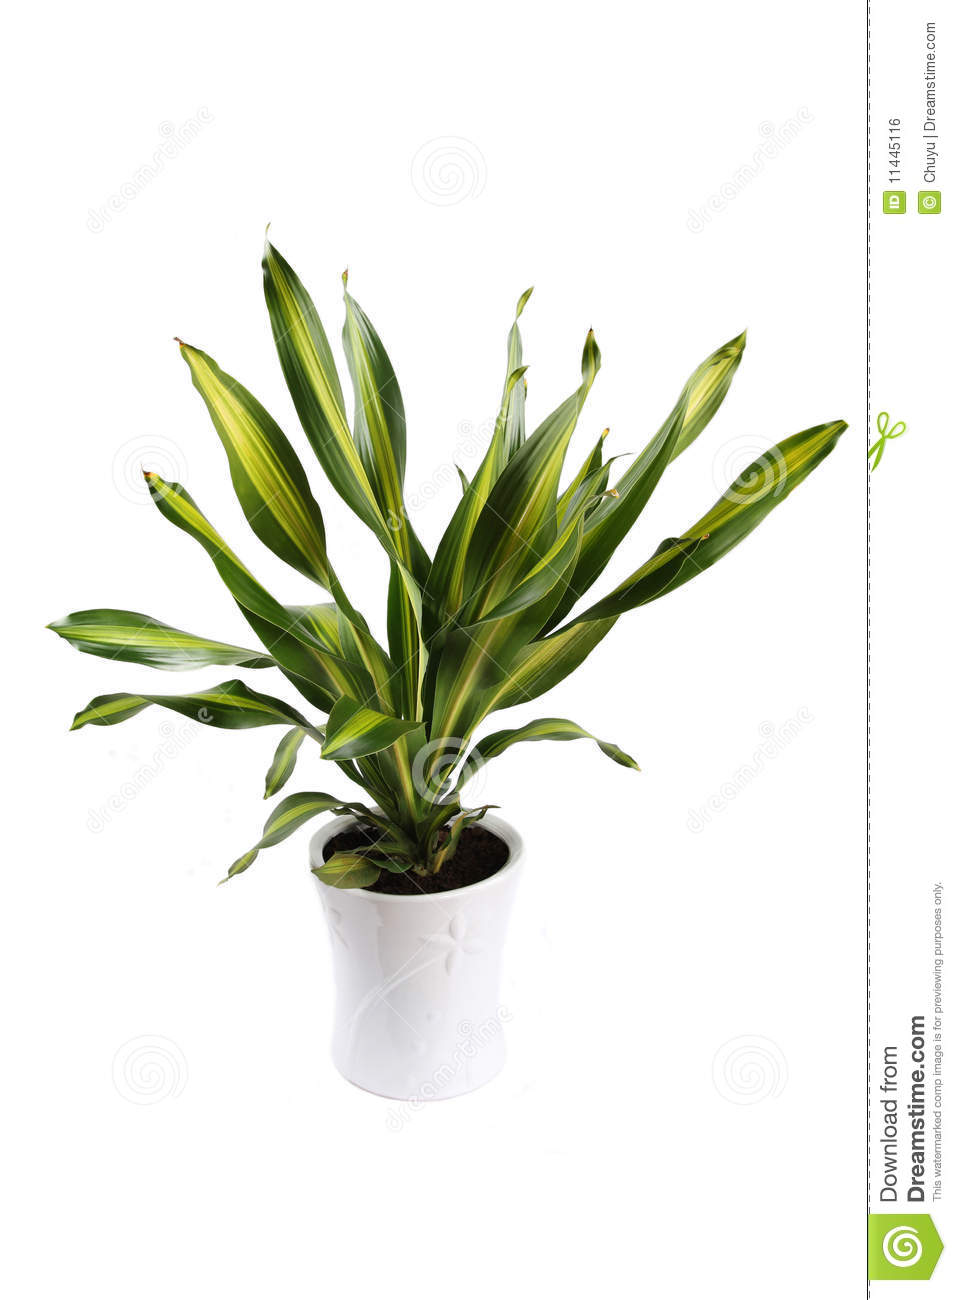 dracaena fragrans stock photo image of green potted 11445116. Black Bedroom Furniture Sets. Home Design Ideas